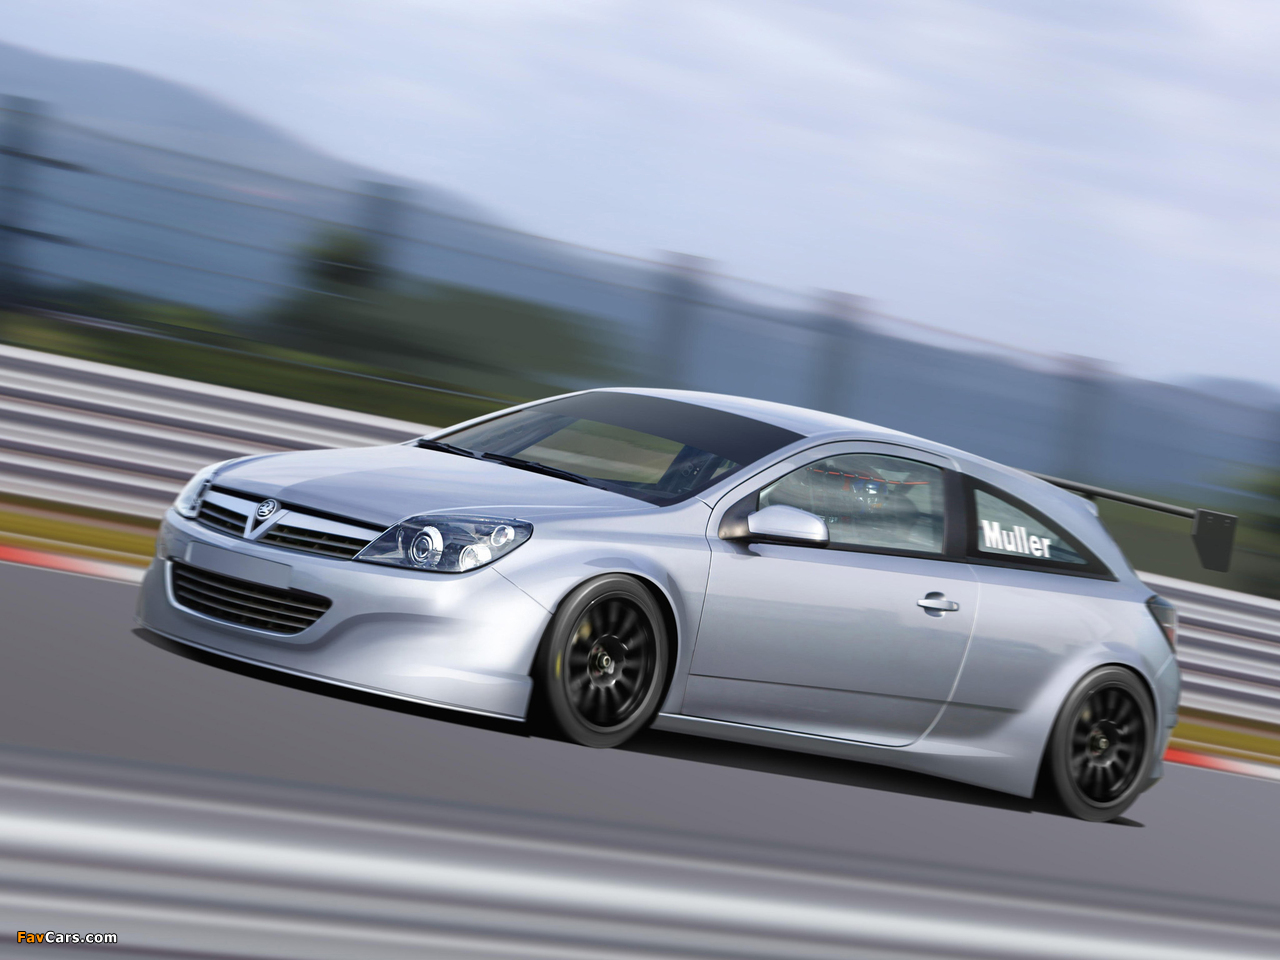 Vauxhall BTCC Astra Sport Hatch Concept 2005 wallpapers (1280 x 960)